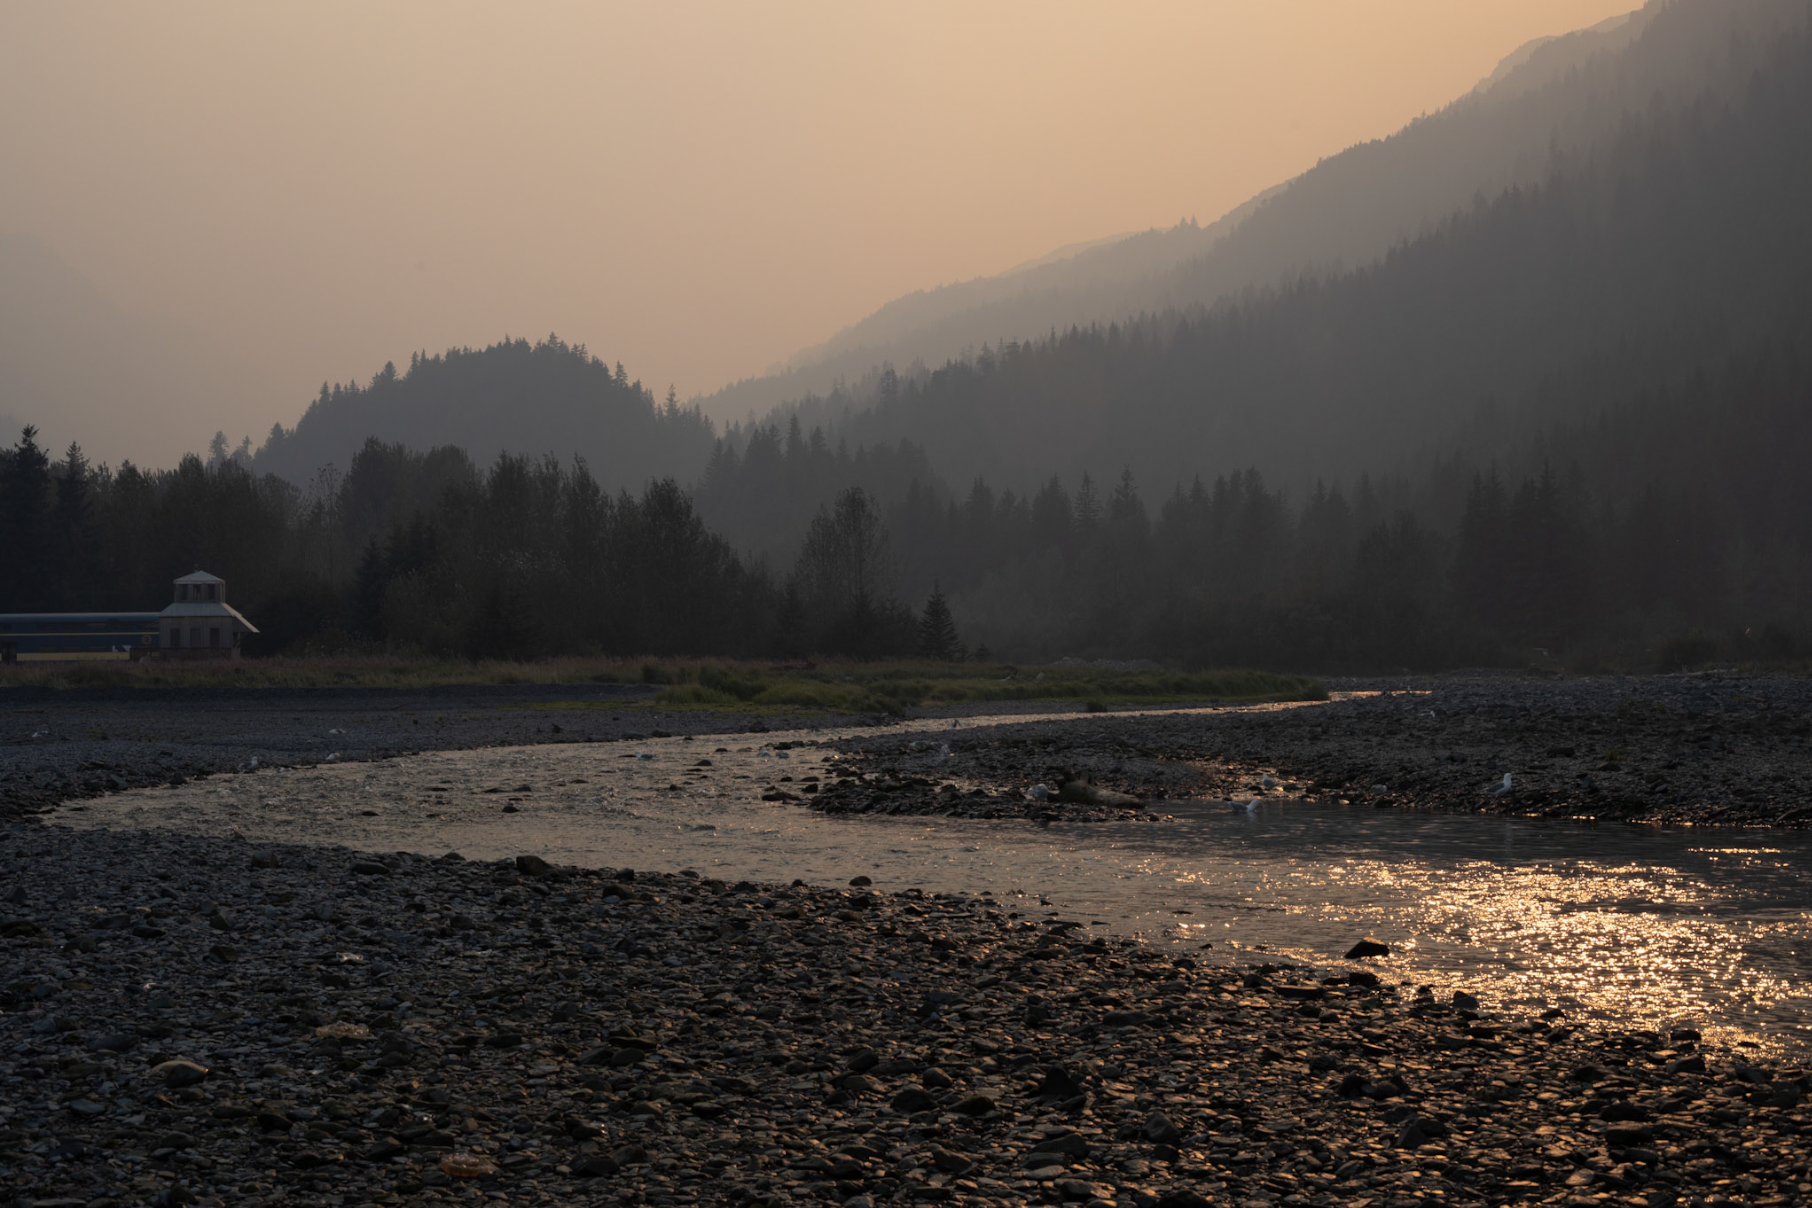 Hazy sunset over mountainous landscape with river flowing through it.